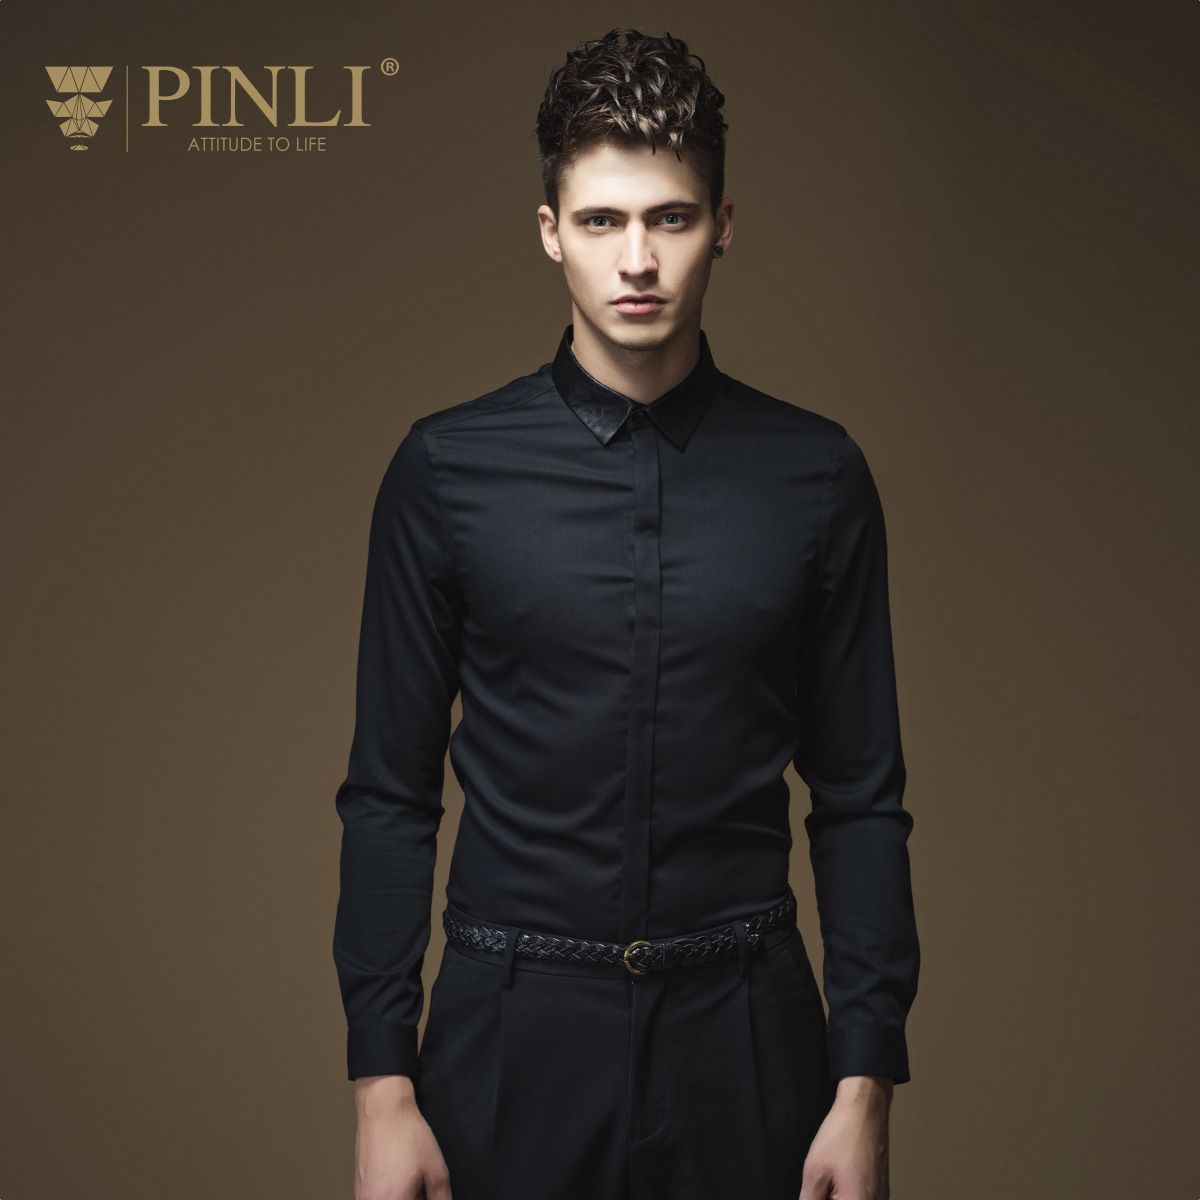 Camisas New Arrival Rushed Full Pinli Pinly British Gentry 2016 Men Fall Solid Micro Long Sleeved Shirt Collar Slim B163313154